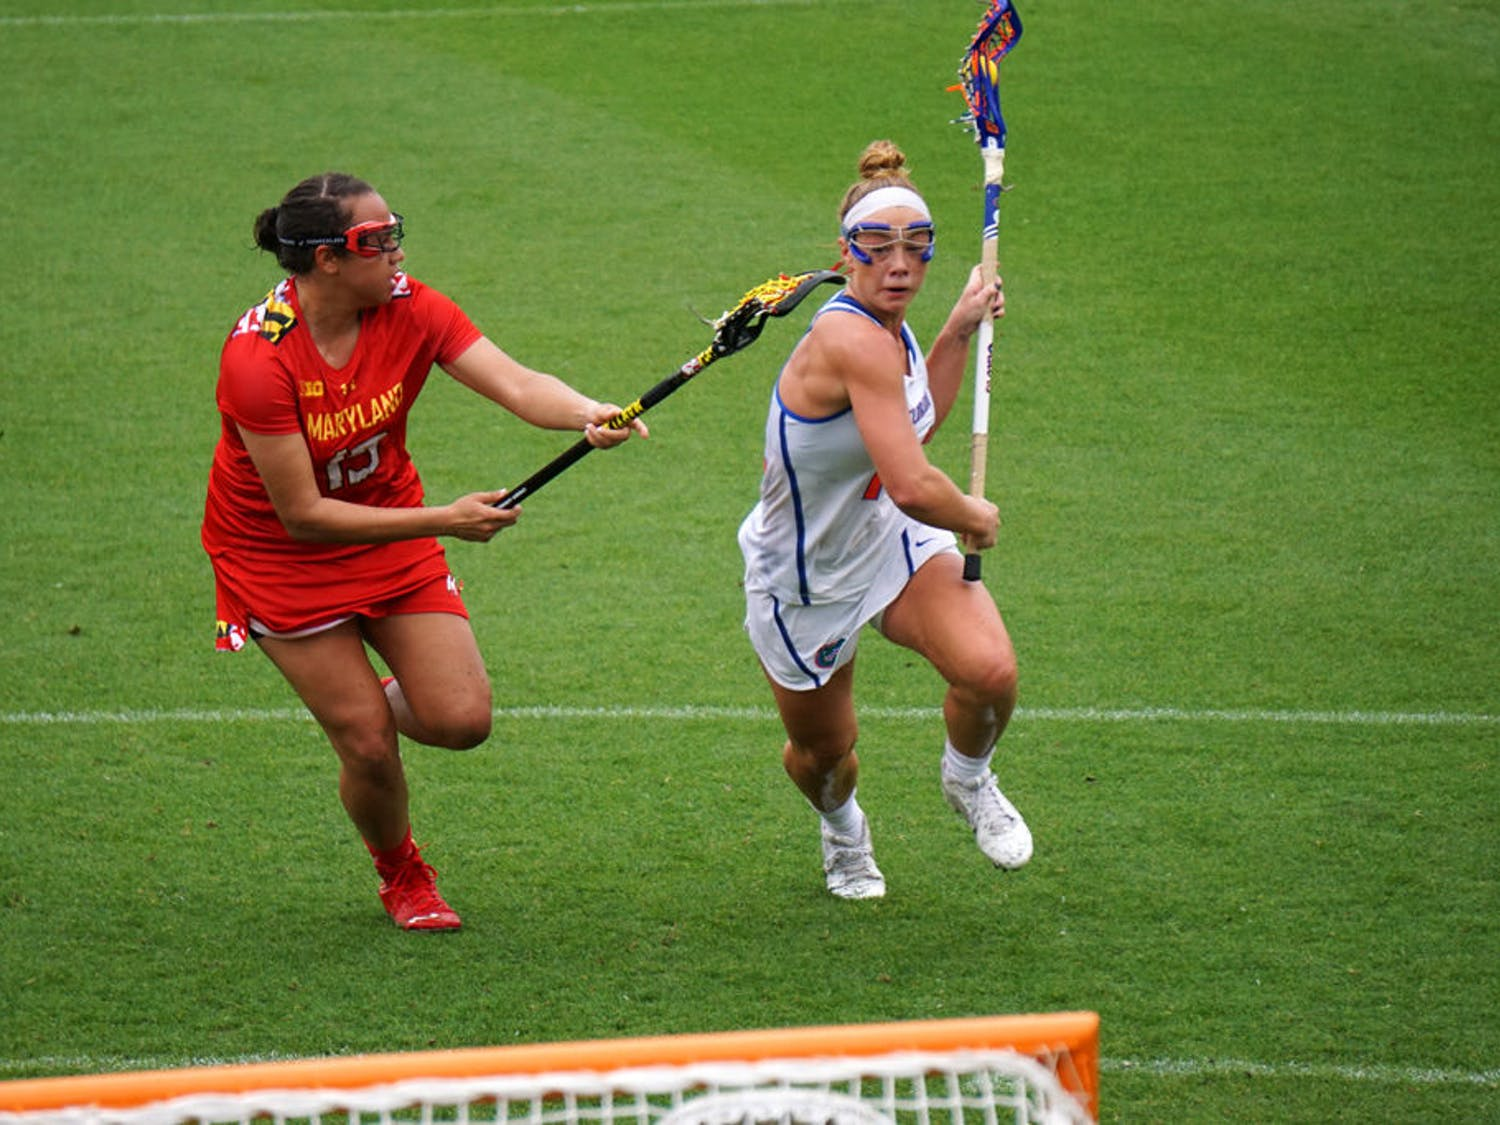 Lindsey Ronbeck runs toward the goal during Florida's 14-4 loss to Maryland on March 19, 2016, at Donald R. Dizney Stadium.